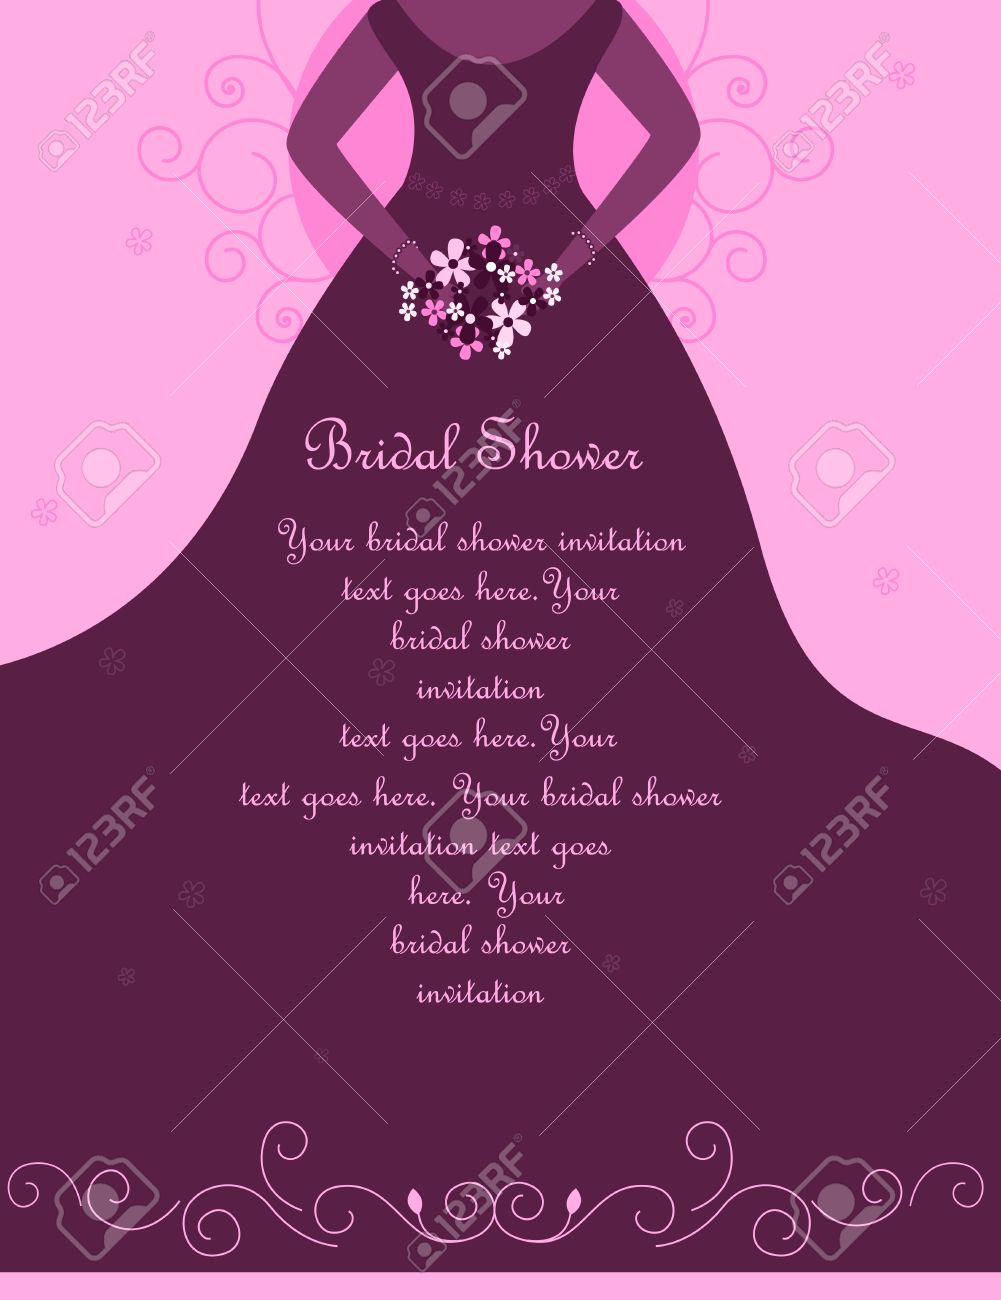 bridal shower wedding invitation card background with a beautiful bride holding flowers on soft pink